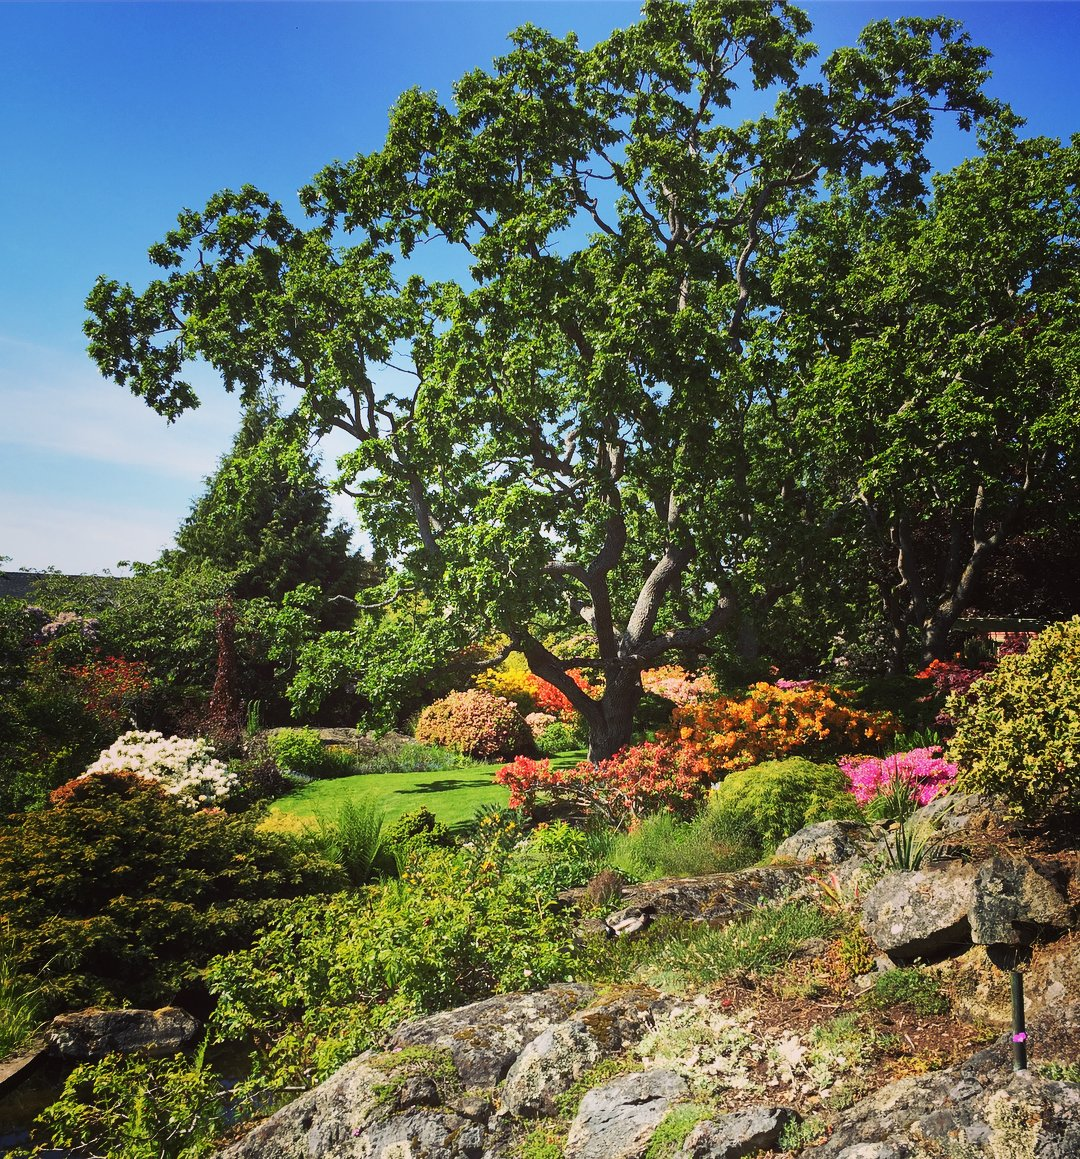 A beautiful sunny garden with rock, and orange, pink and yellow flowers, and green leafy trees. The sky is bright blue and clear.